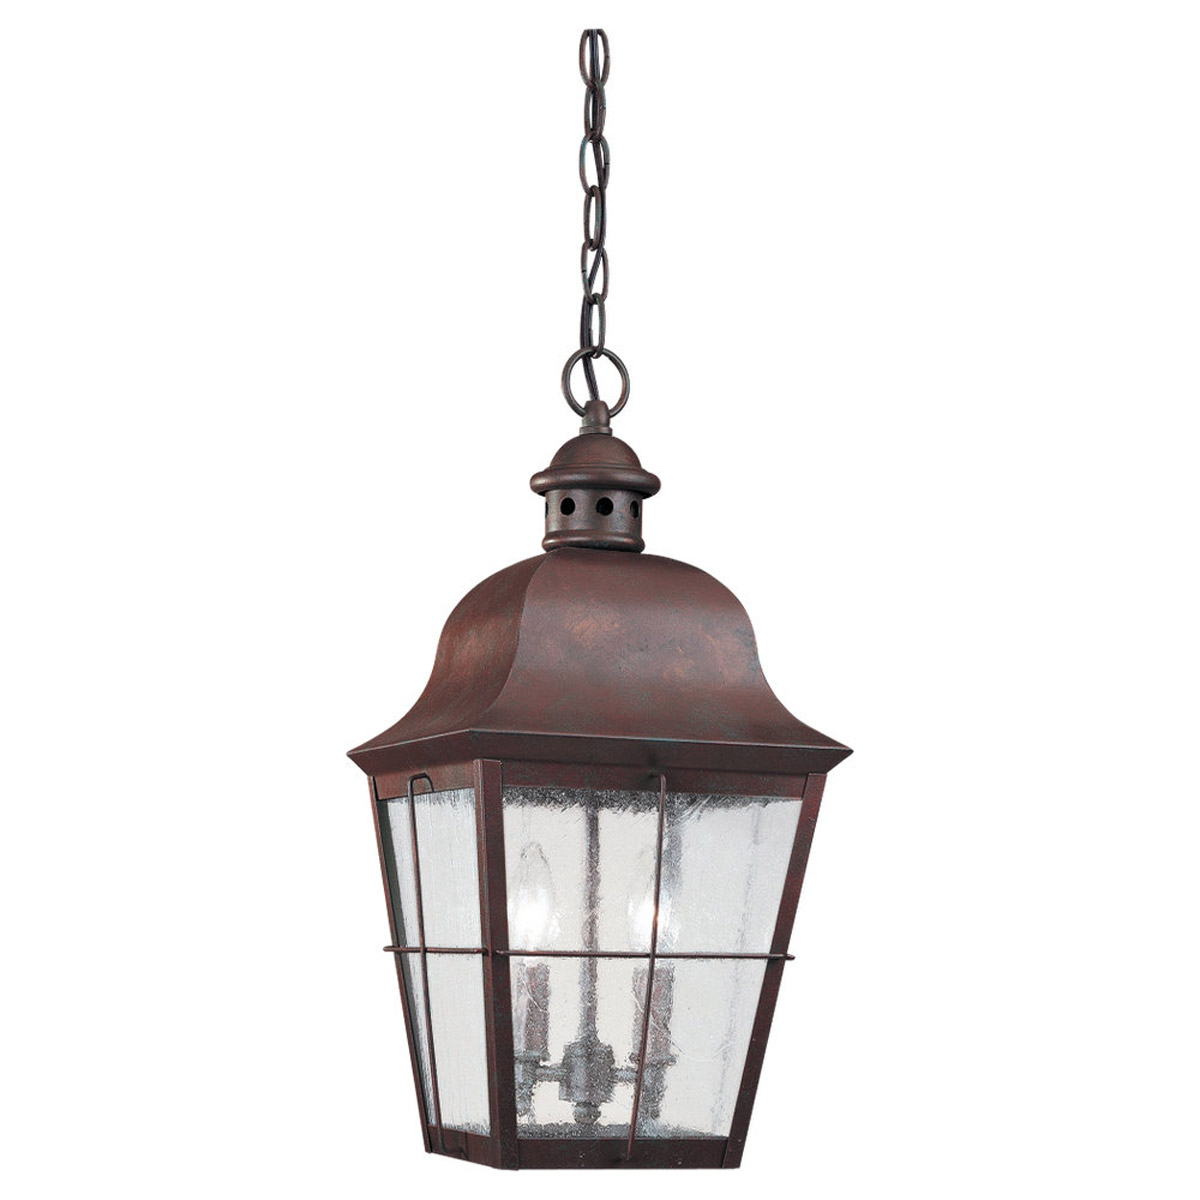 Sea Gull Lighting Chatham 2 Light Outdoor Pendant in Weathered Copper 6062-44